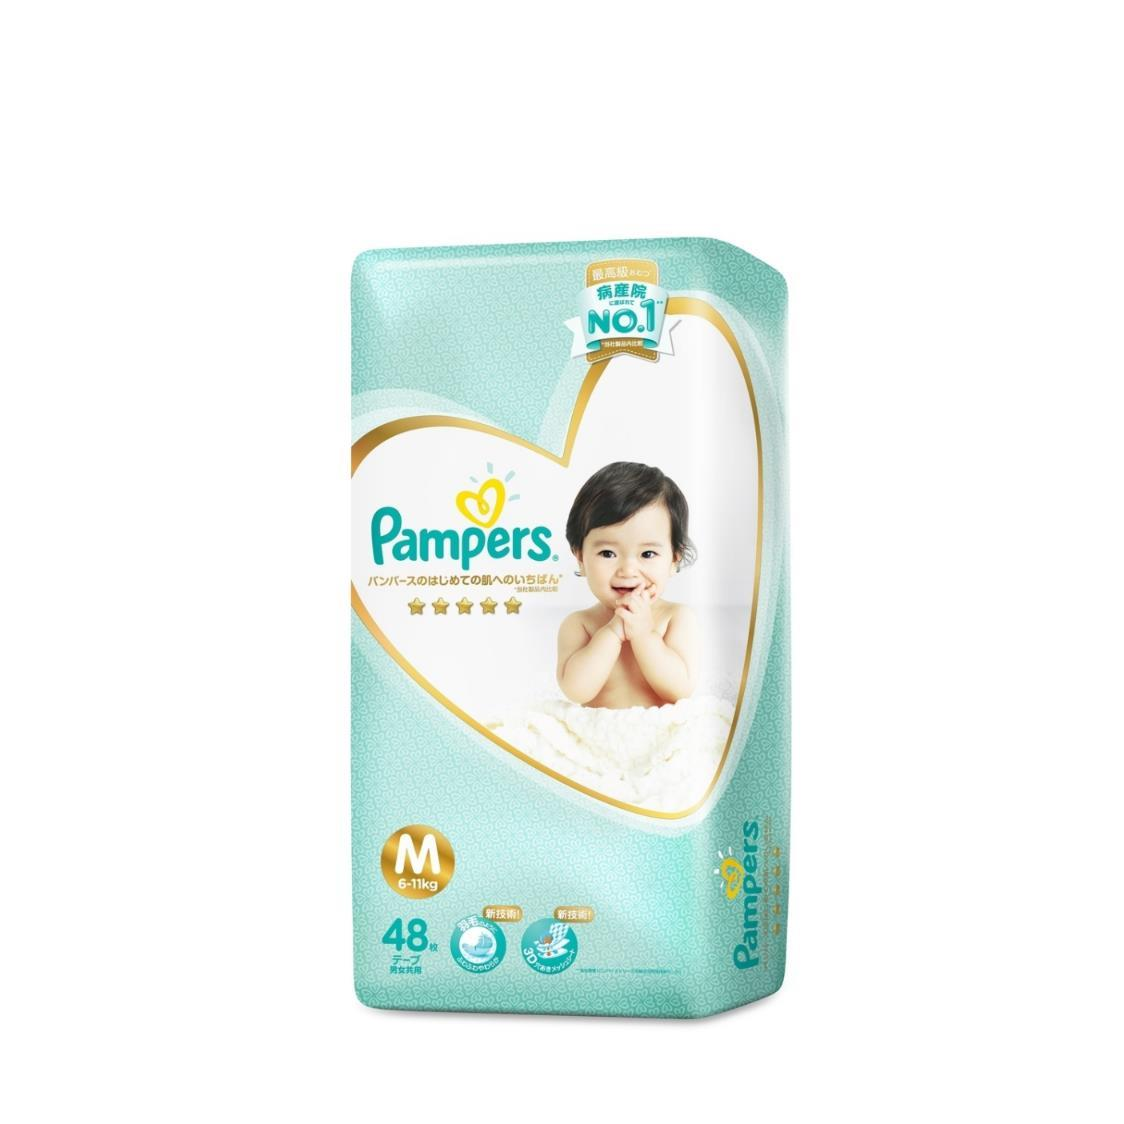 Pampers Premium Care Diapers M 48s 6-11kg